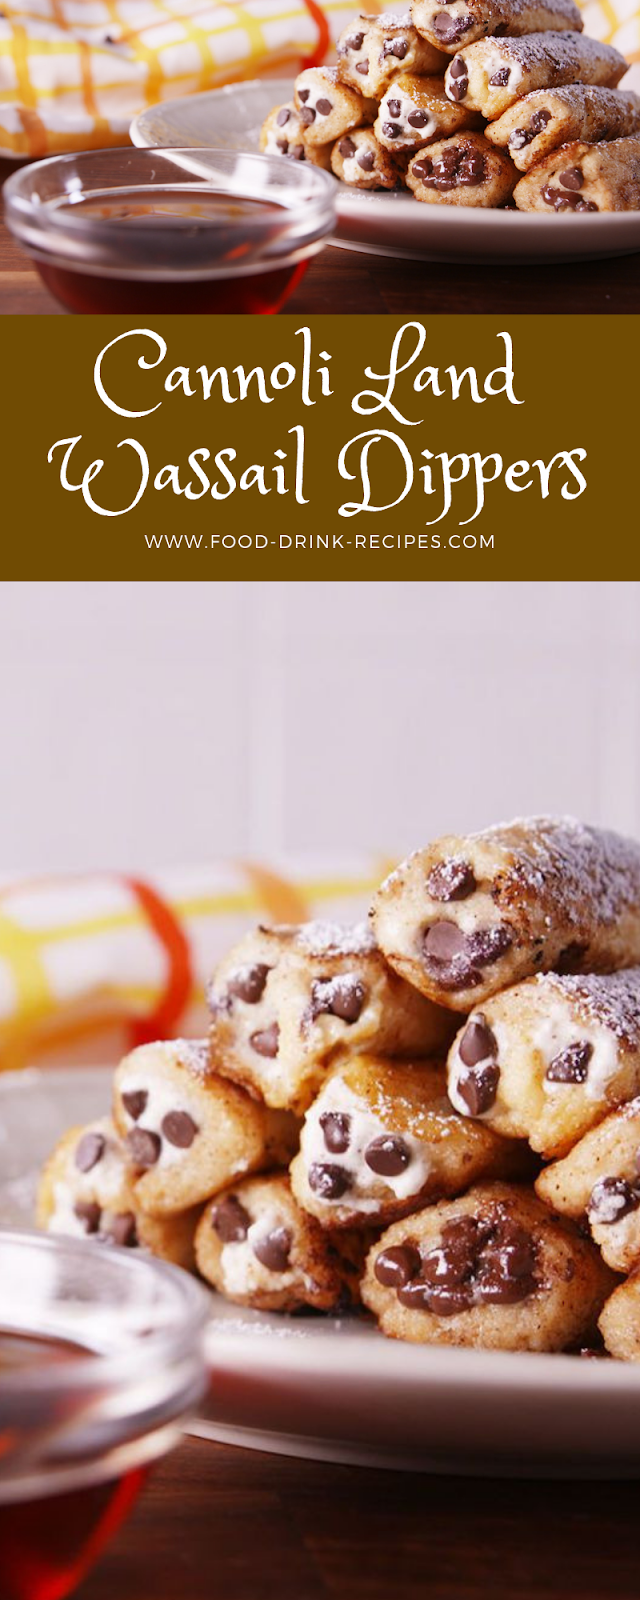 Cannoli Land Wassail Dippers